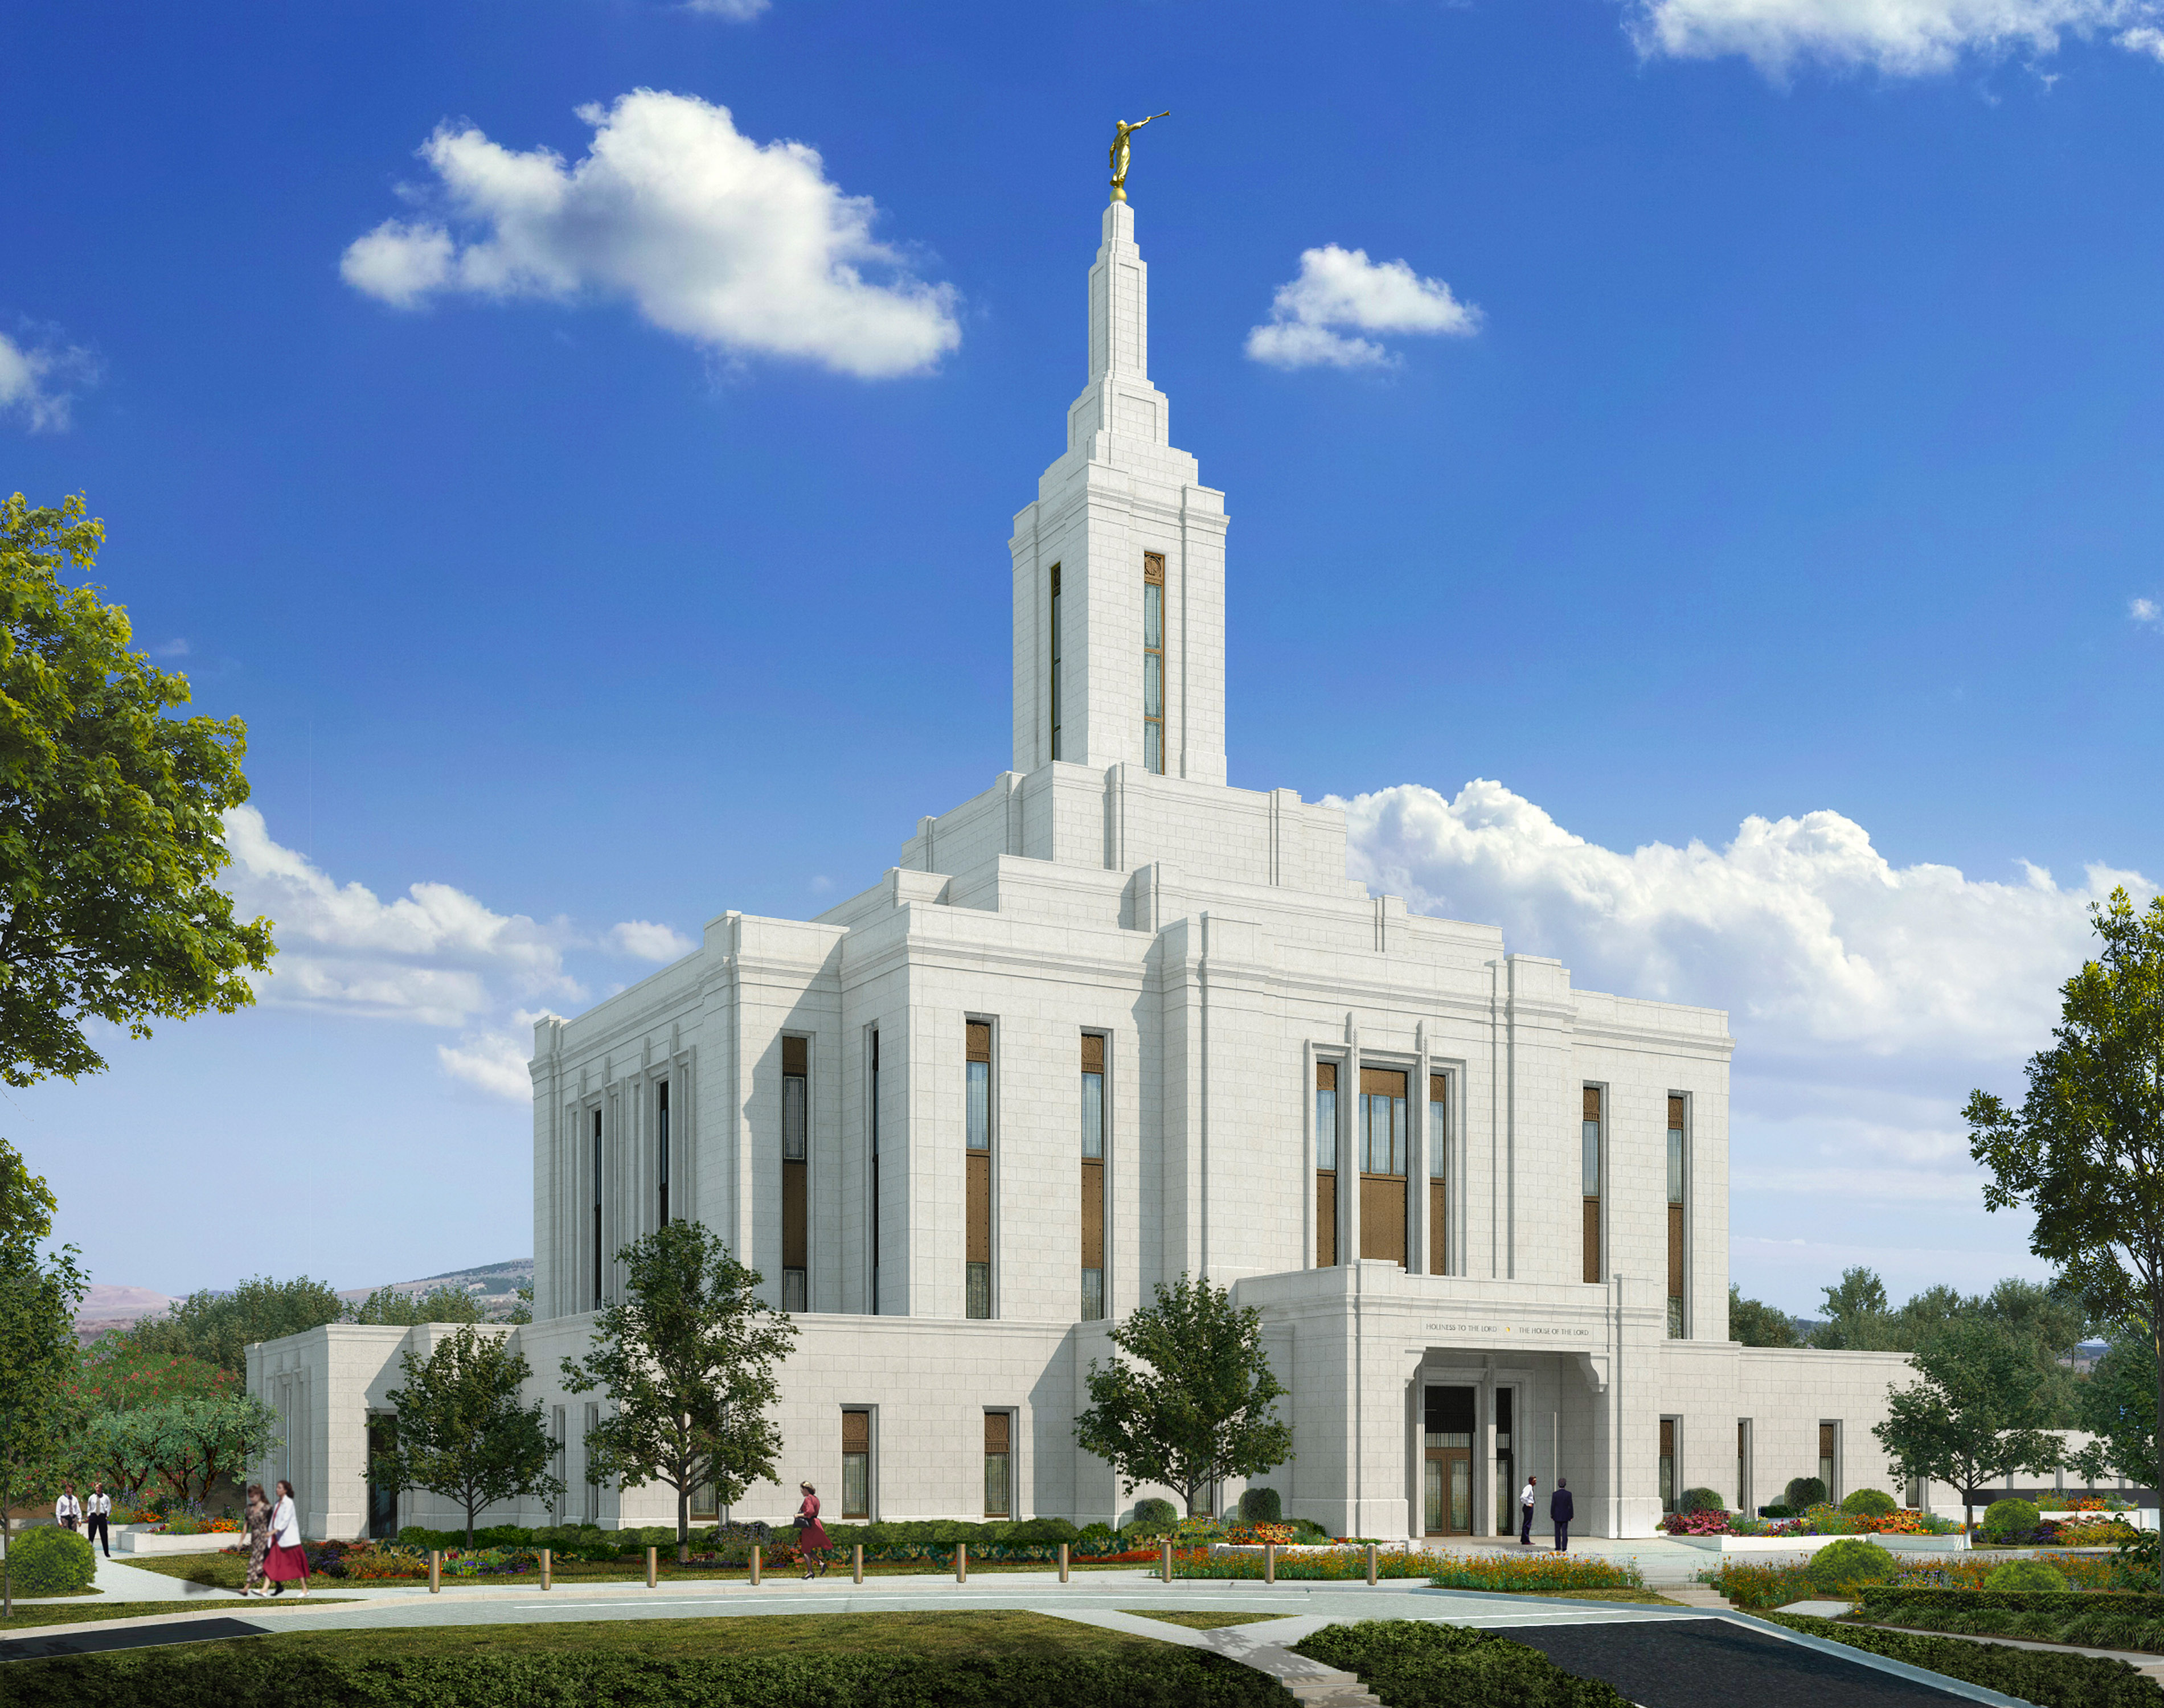 Artist's rendering of the future Pocatello Idaho Temple. It will be the state's sixth temple.